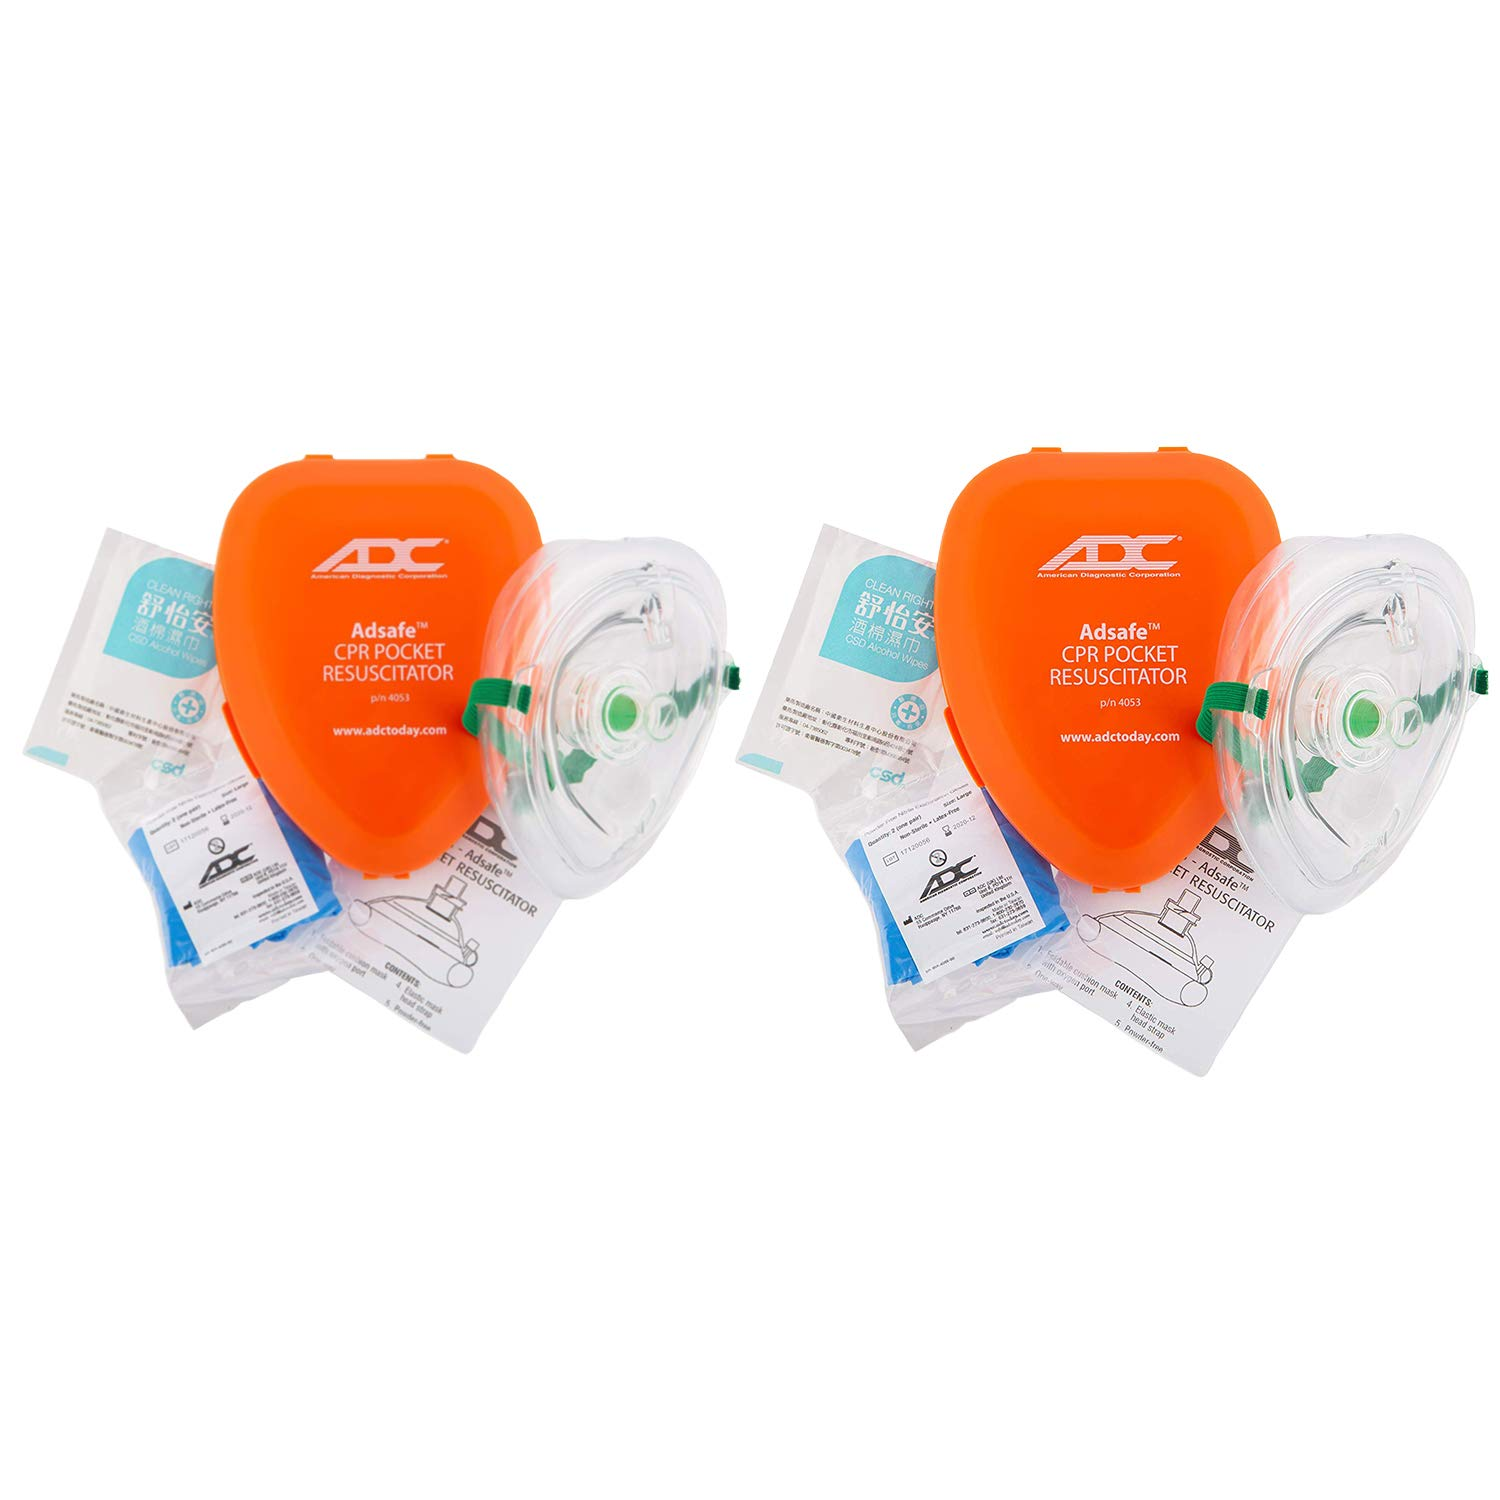 ADC Adsafe CPR Mask Pocket Resuscitator Kit; 3M Filtrete Filter with Replaceable Valve, Disposable Non-Latex Gloves, and Alcohol Wipe; 2 Kits